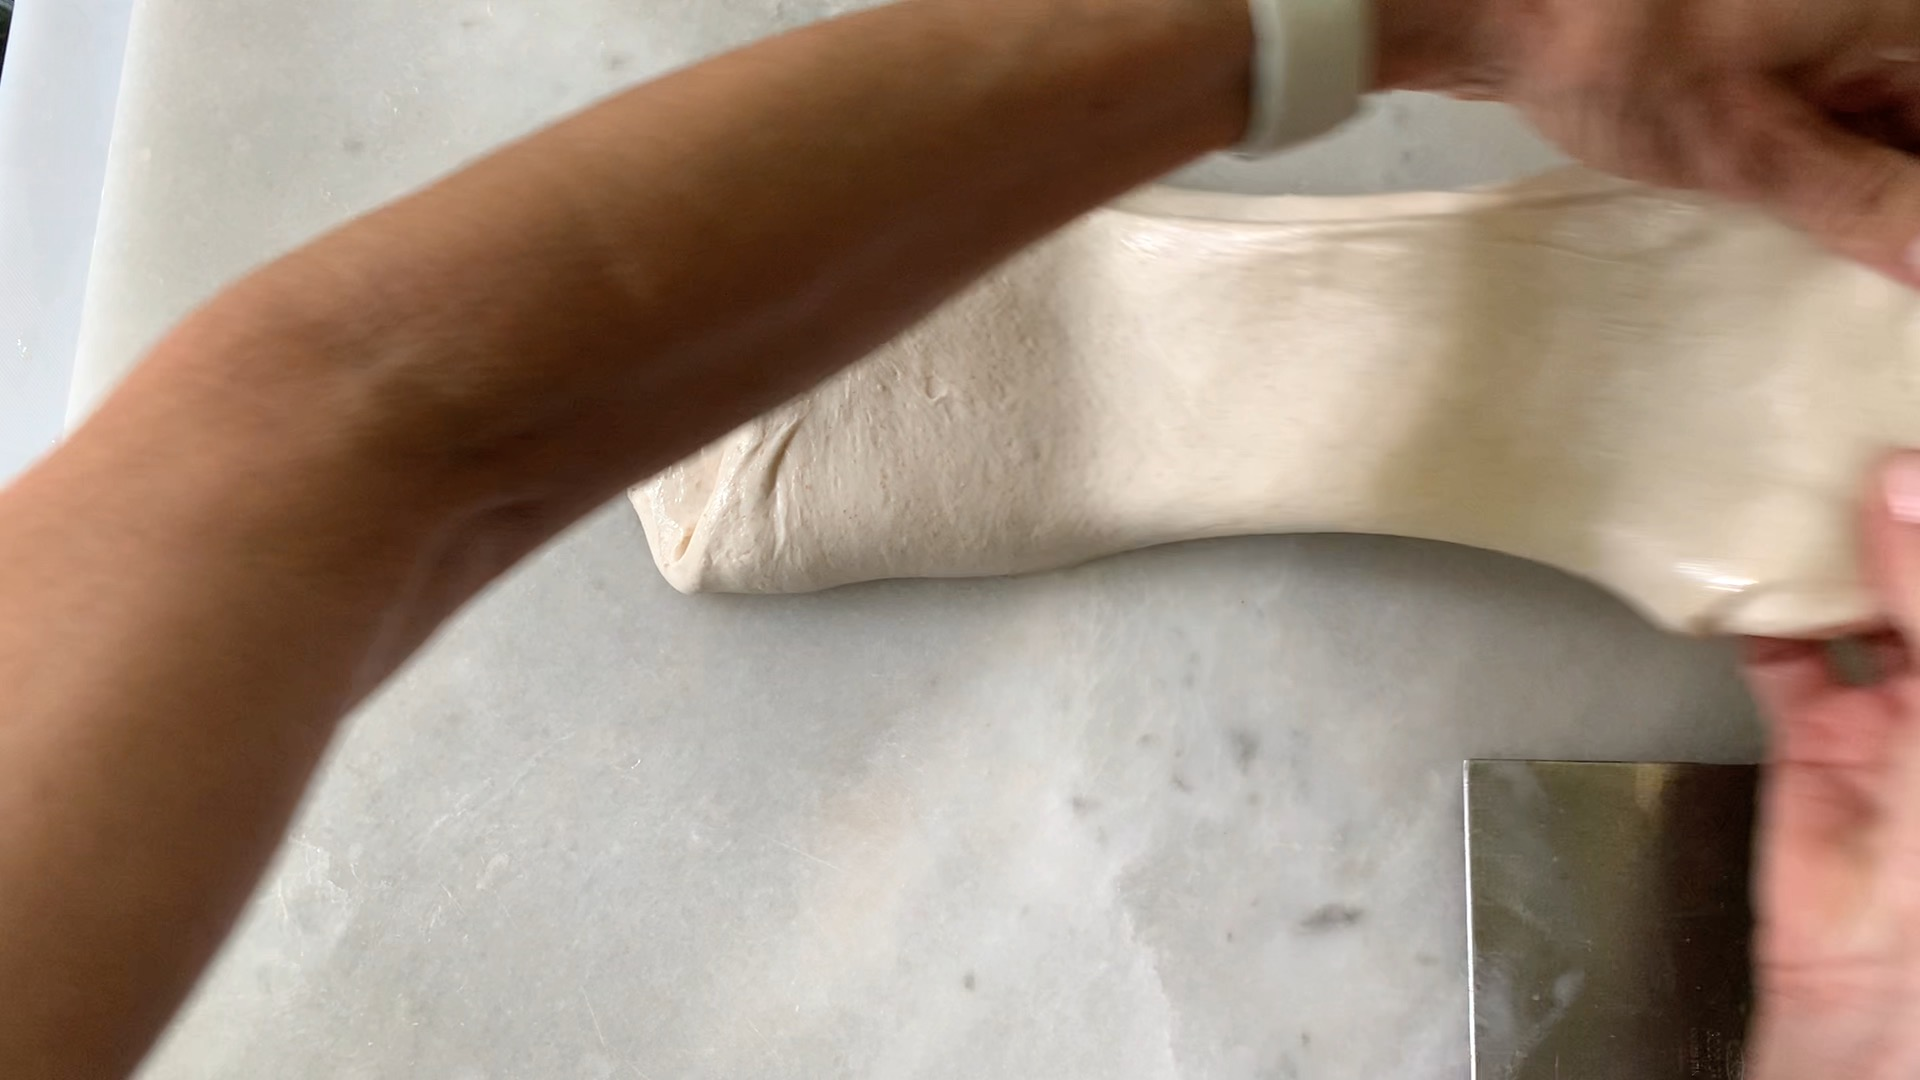 stretching and folding the dough to build structure.